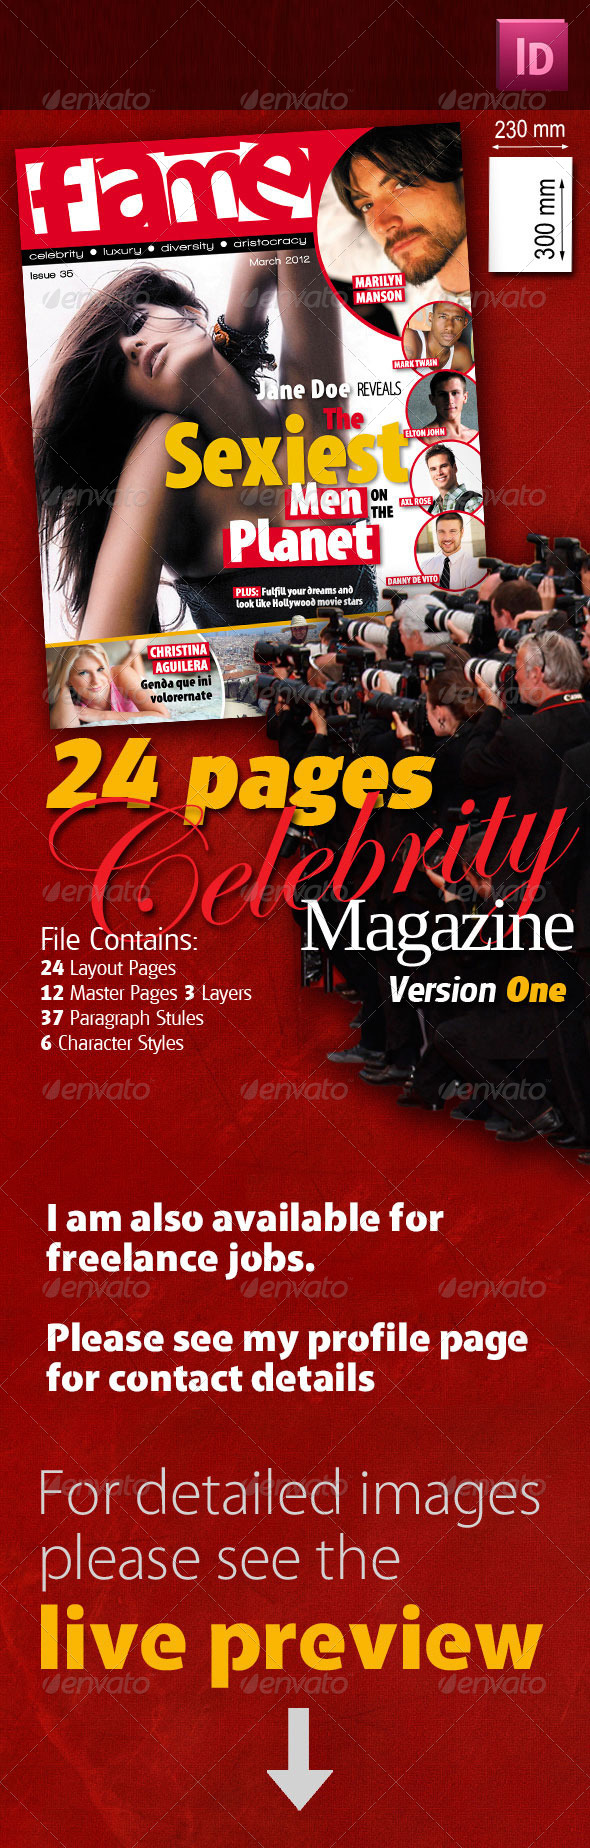 24 Pages Celebrity Magazine Version One - Magazines Print Templates